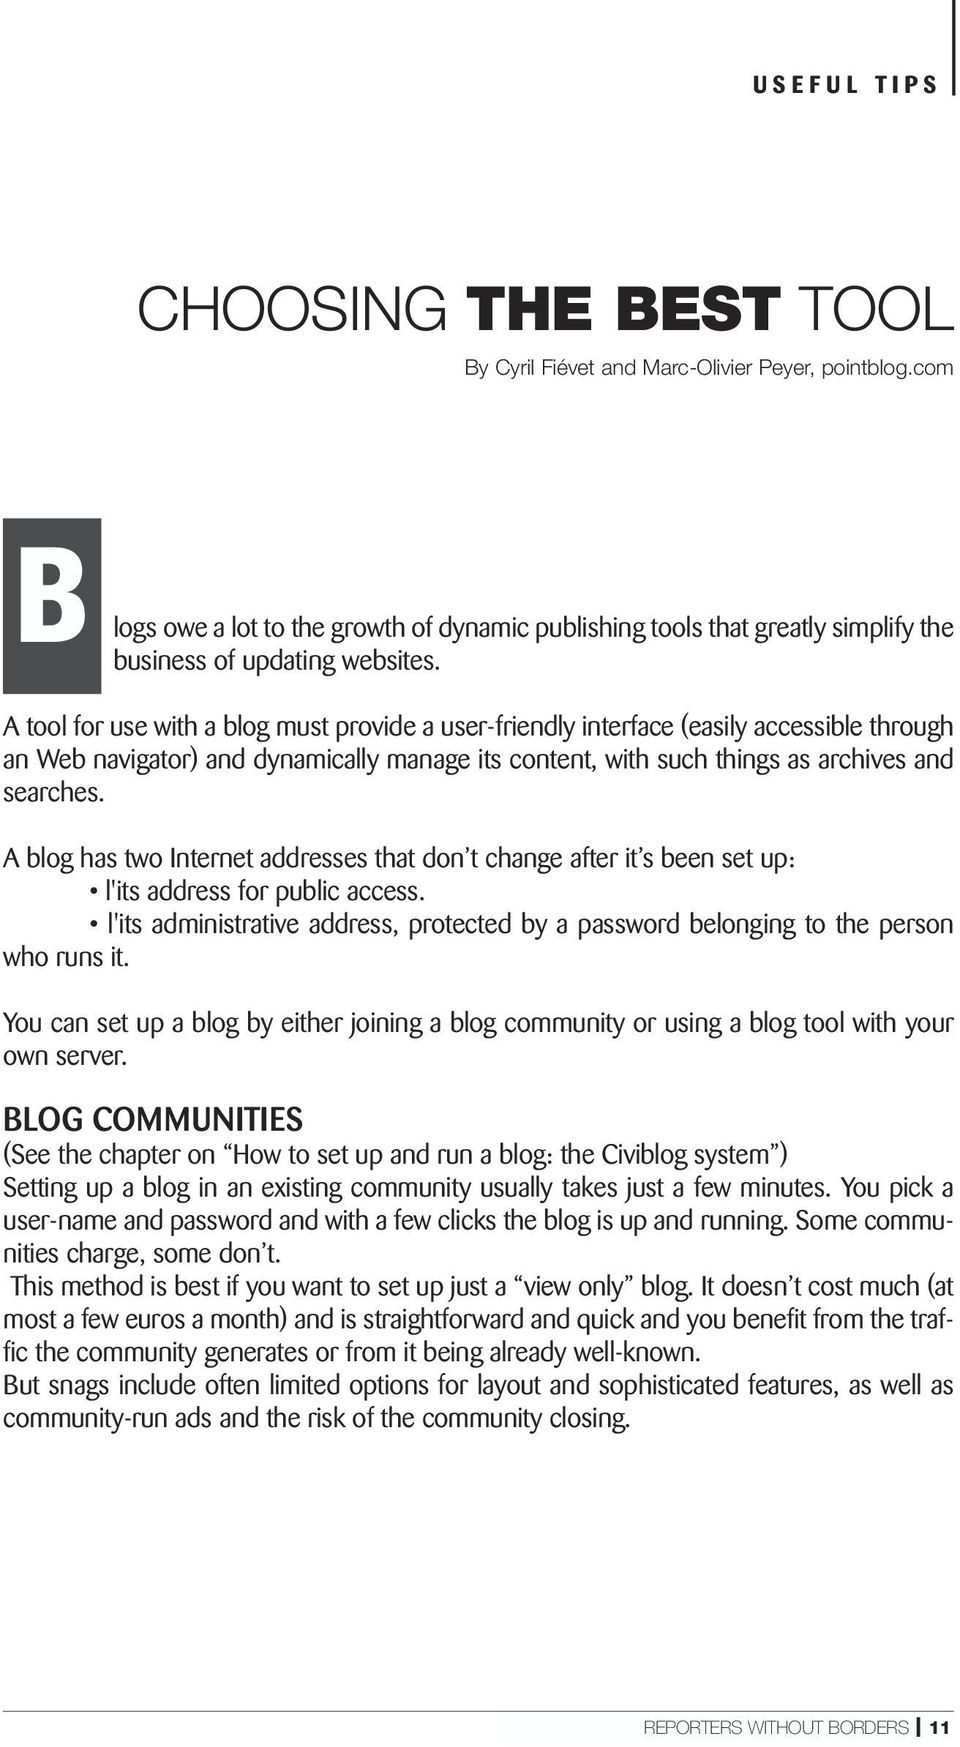 A tool for use with a blog must provide a user-friendly interface (easily accessible through an Web navigator) and dynamically manage its content, with such things as archives and searches.